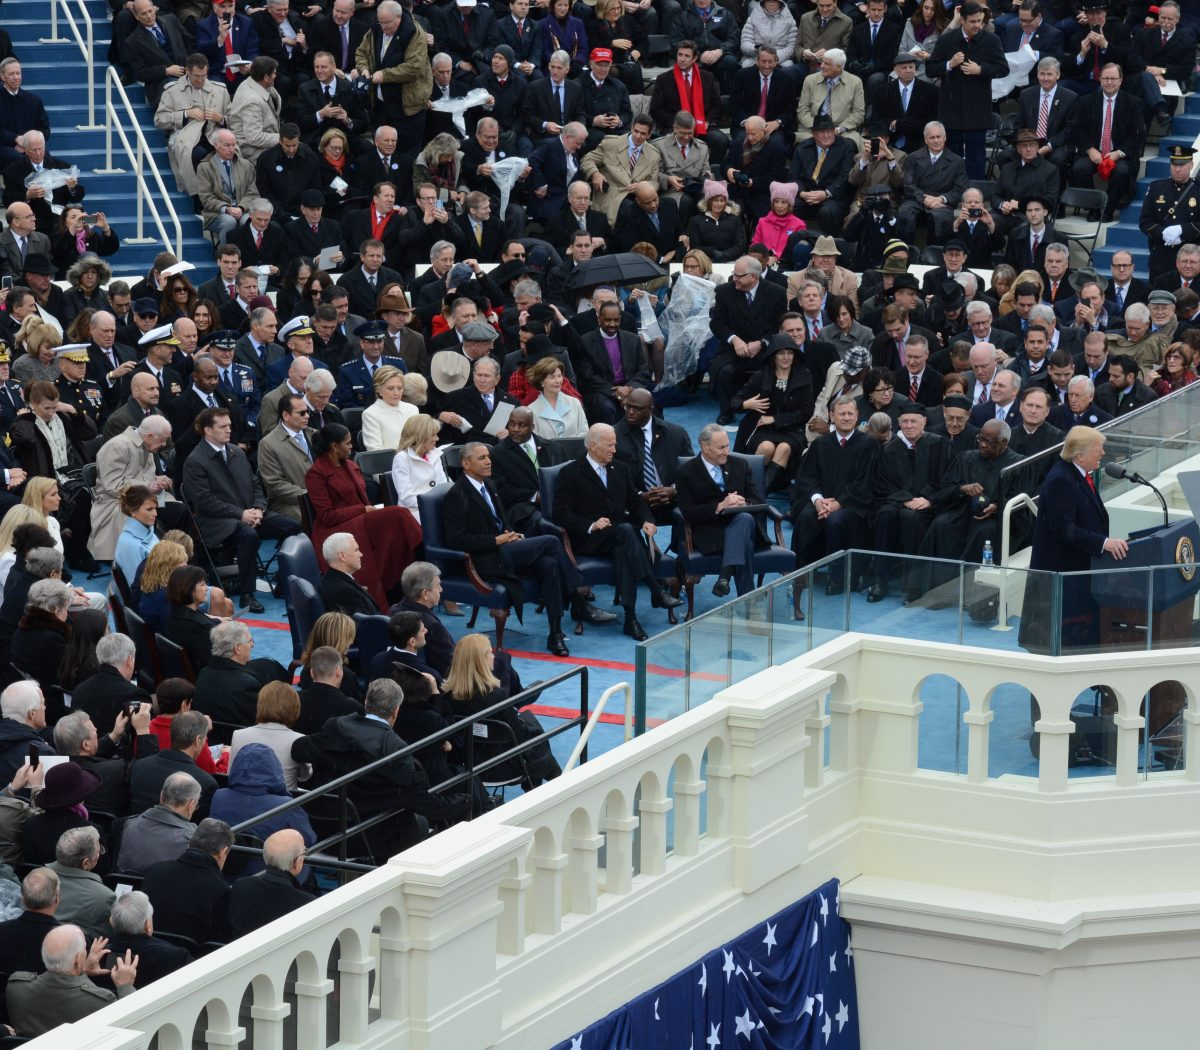 President Donald J. Trump gives the Inaugural address as the 58th President of the United States on January 20, 2017. /Photo by Roy Lewis